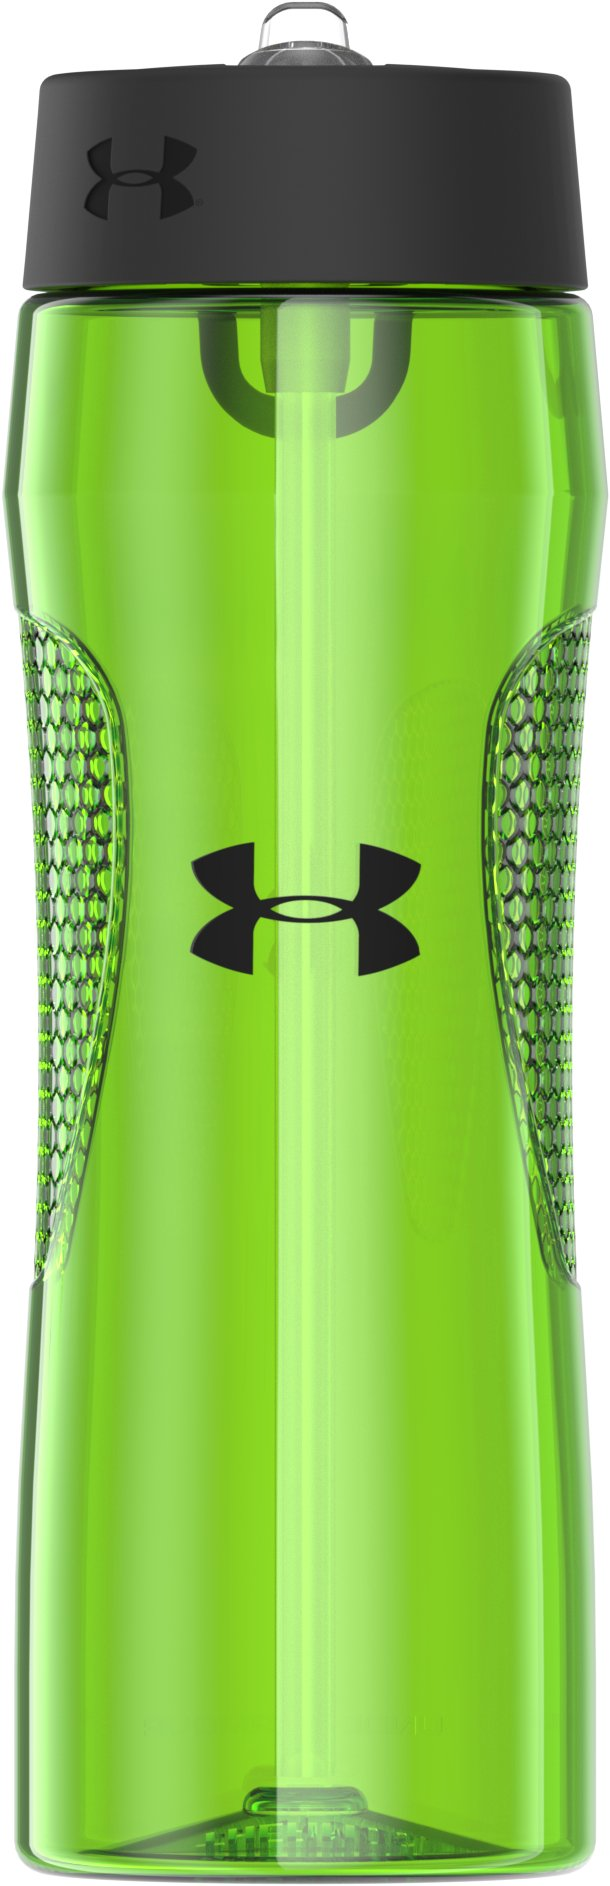 Elevate 22 oz. Tritan Bottle with Straw Top, HYPER GREEN